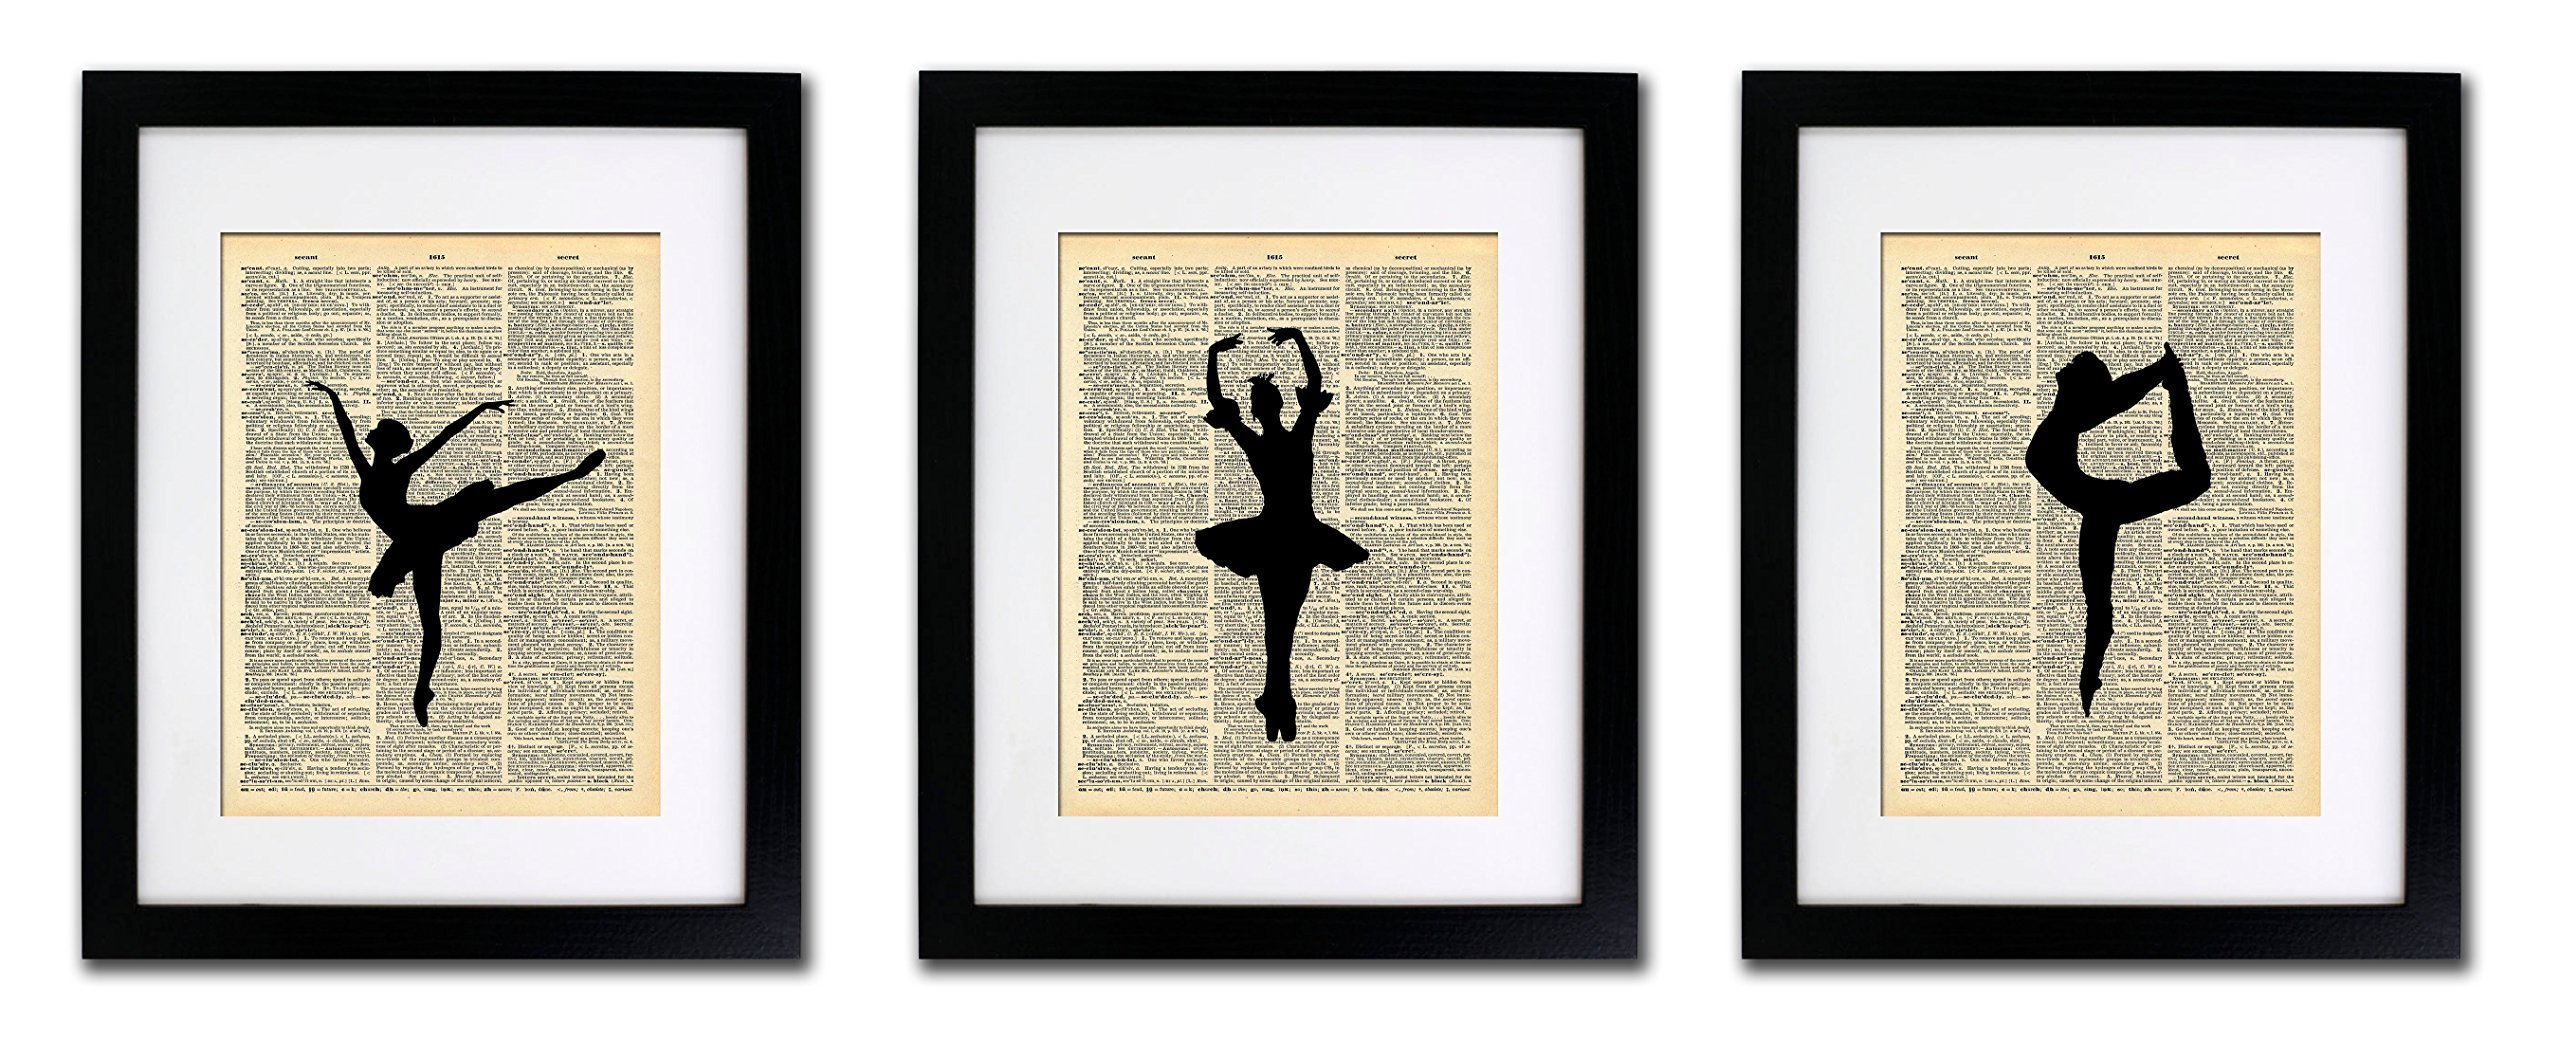 Ballerina Dancers - 3 Print Set - Vintage Dictionary Print 8x10 Home Vintage Art Abstract Prints Wall Art for Home Decor Wall Decorations For Living Room Bedroom Office Ready-to-Frame 3